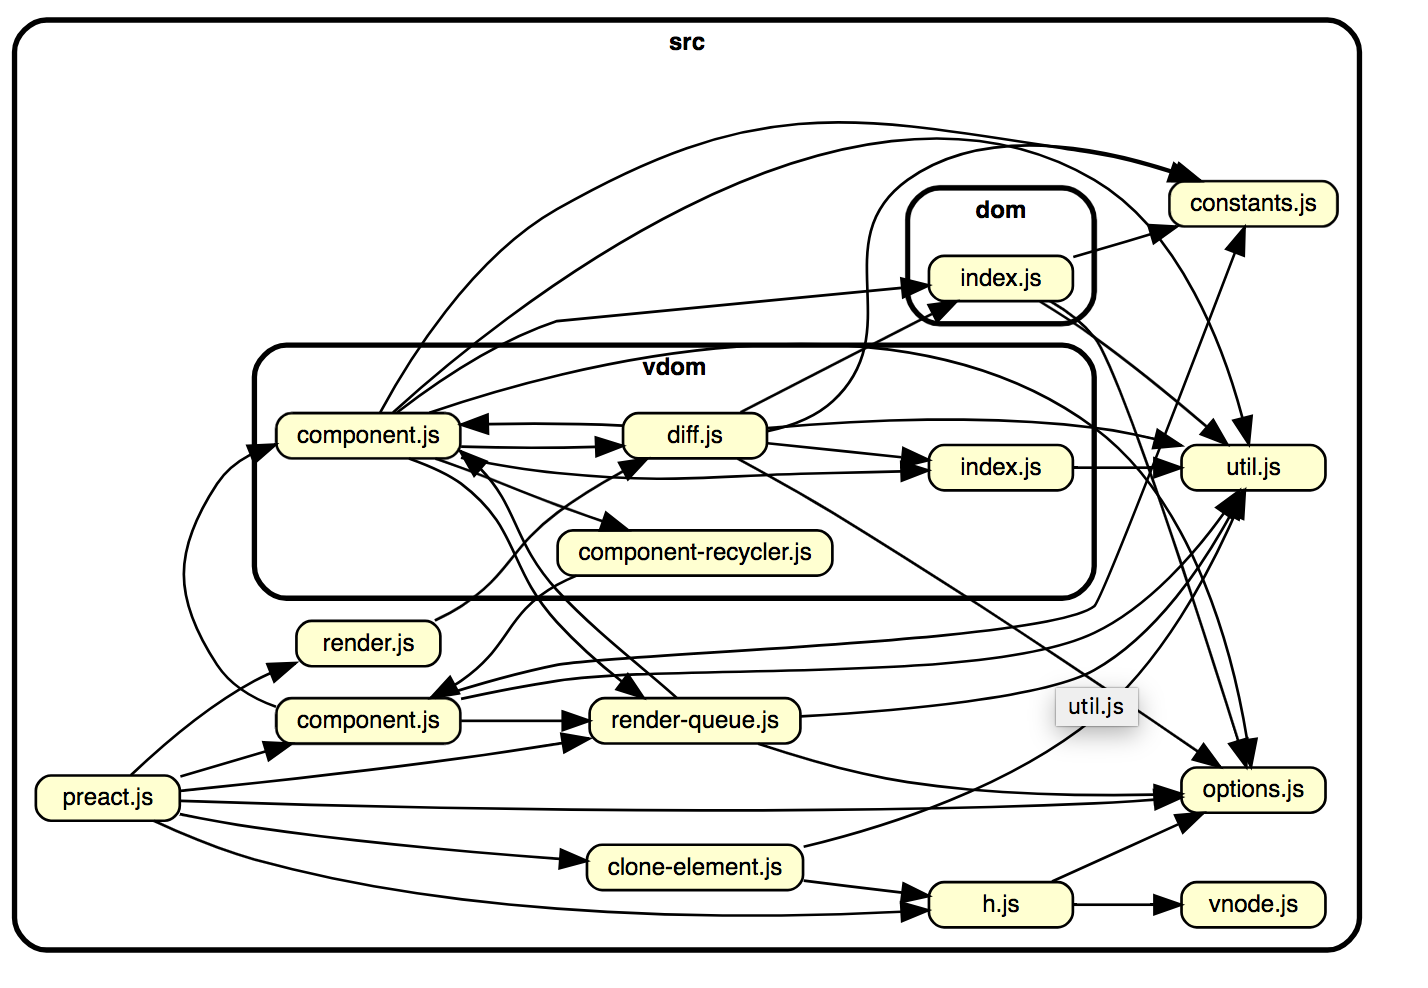 How to easily visualize a project's dependency graph with